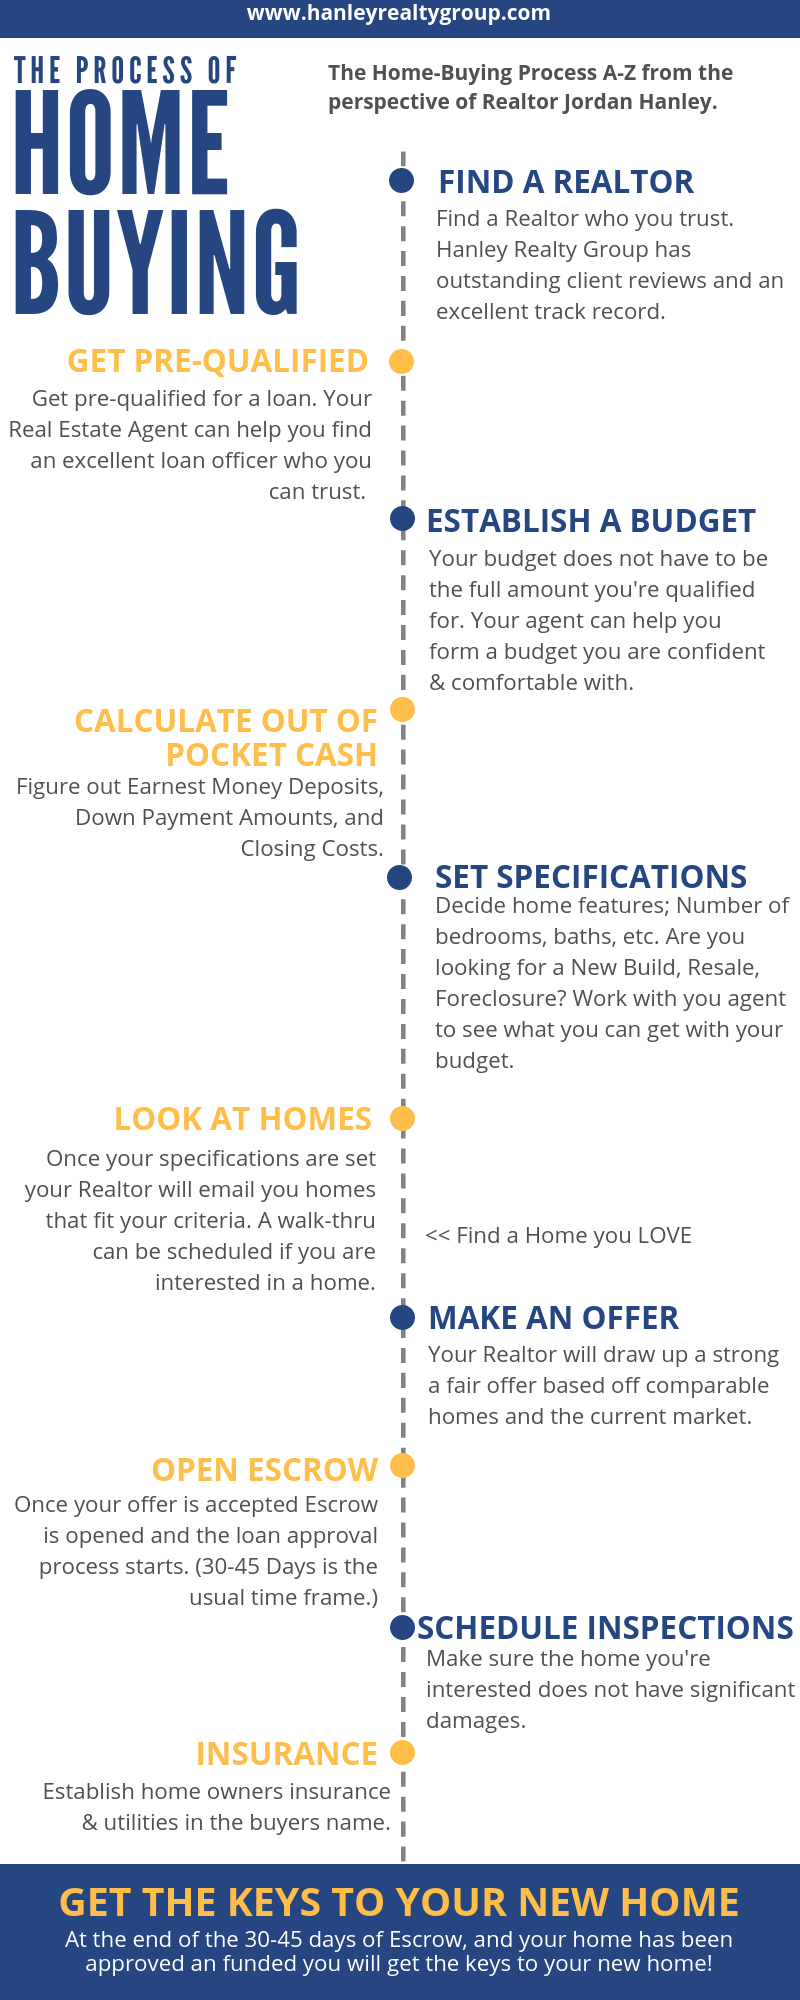 The Step By Step Process Of Buying A Home Homebuying Realestateadvice Homebuyingadvice Stepbystephomebuy Home Buying Process Home Buying Buying First Home